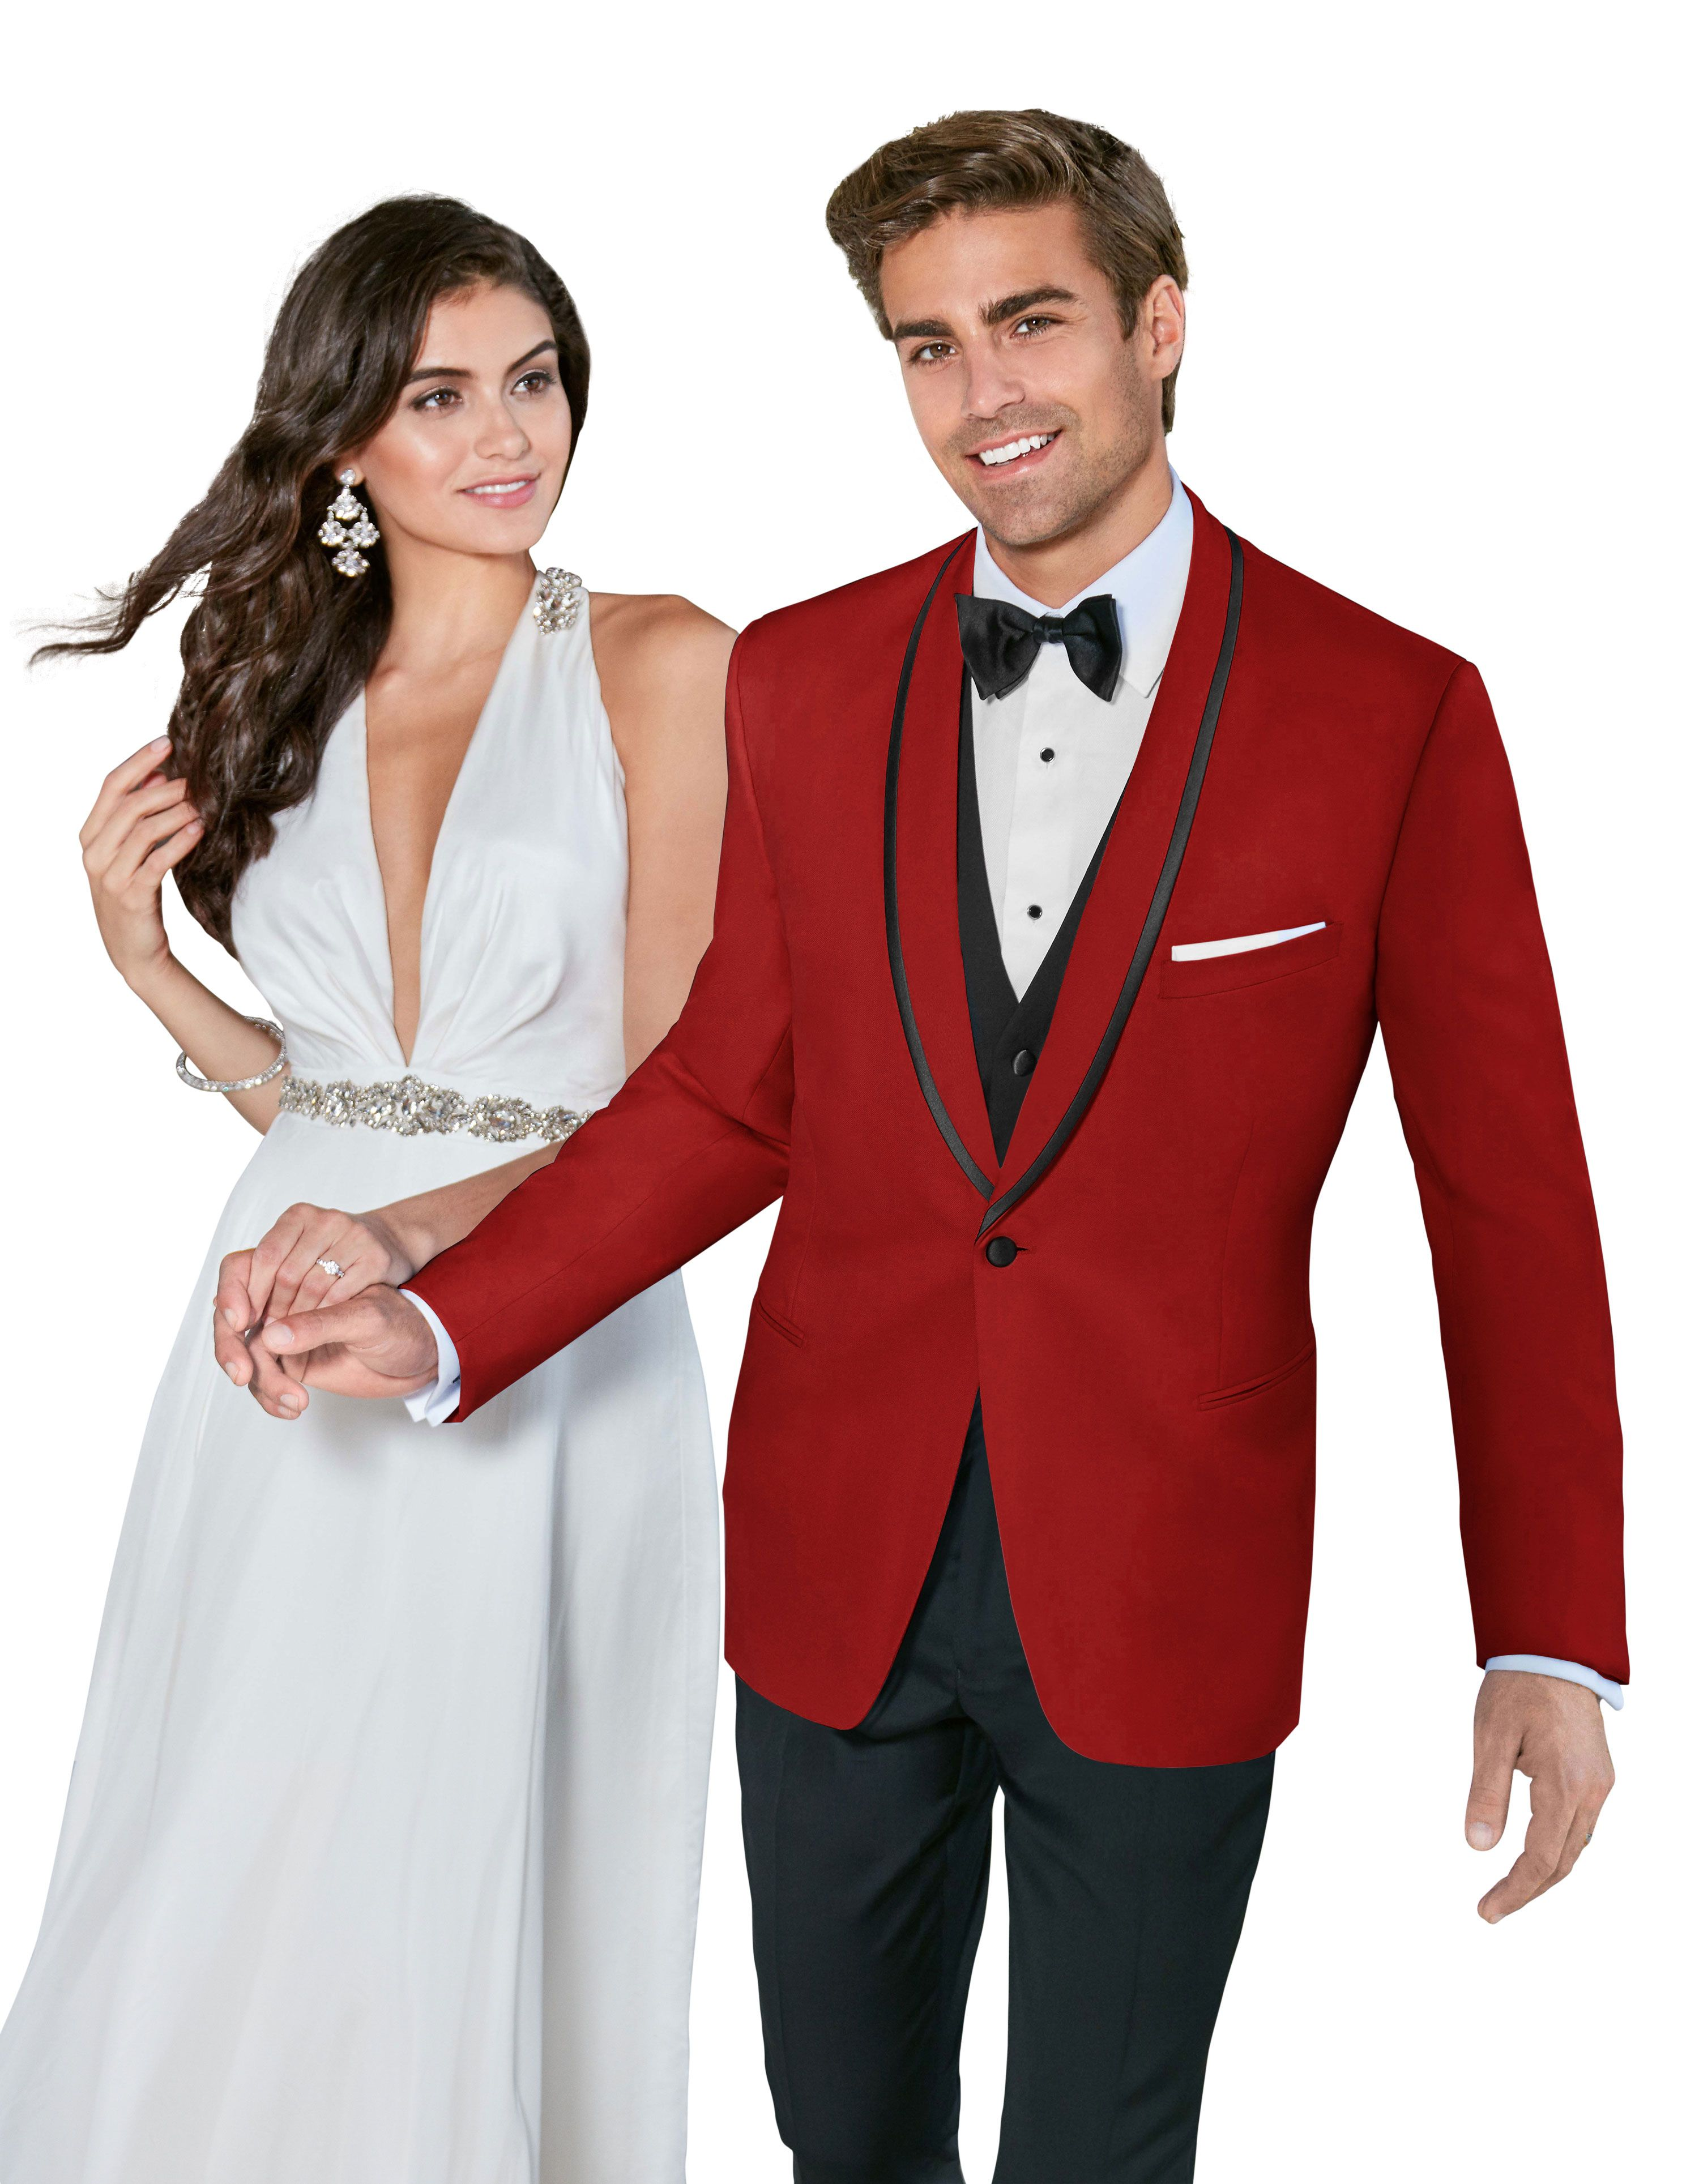 Pin by Black Tie Formalwear on Tuxedos | Pinterest | Red tuxedo